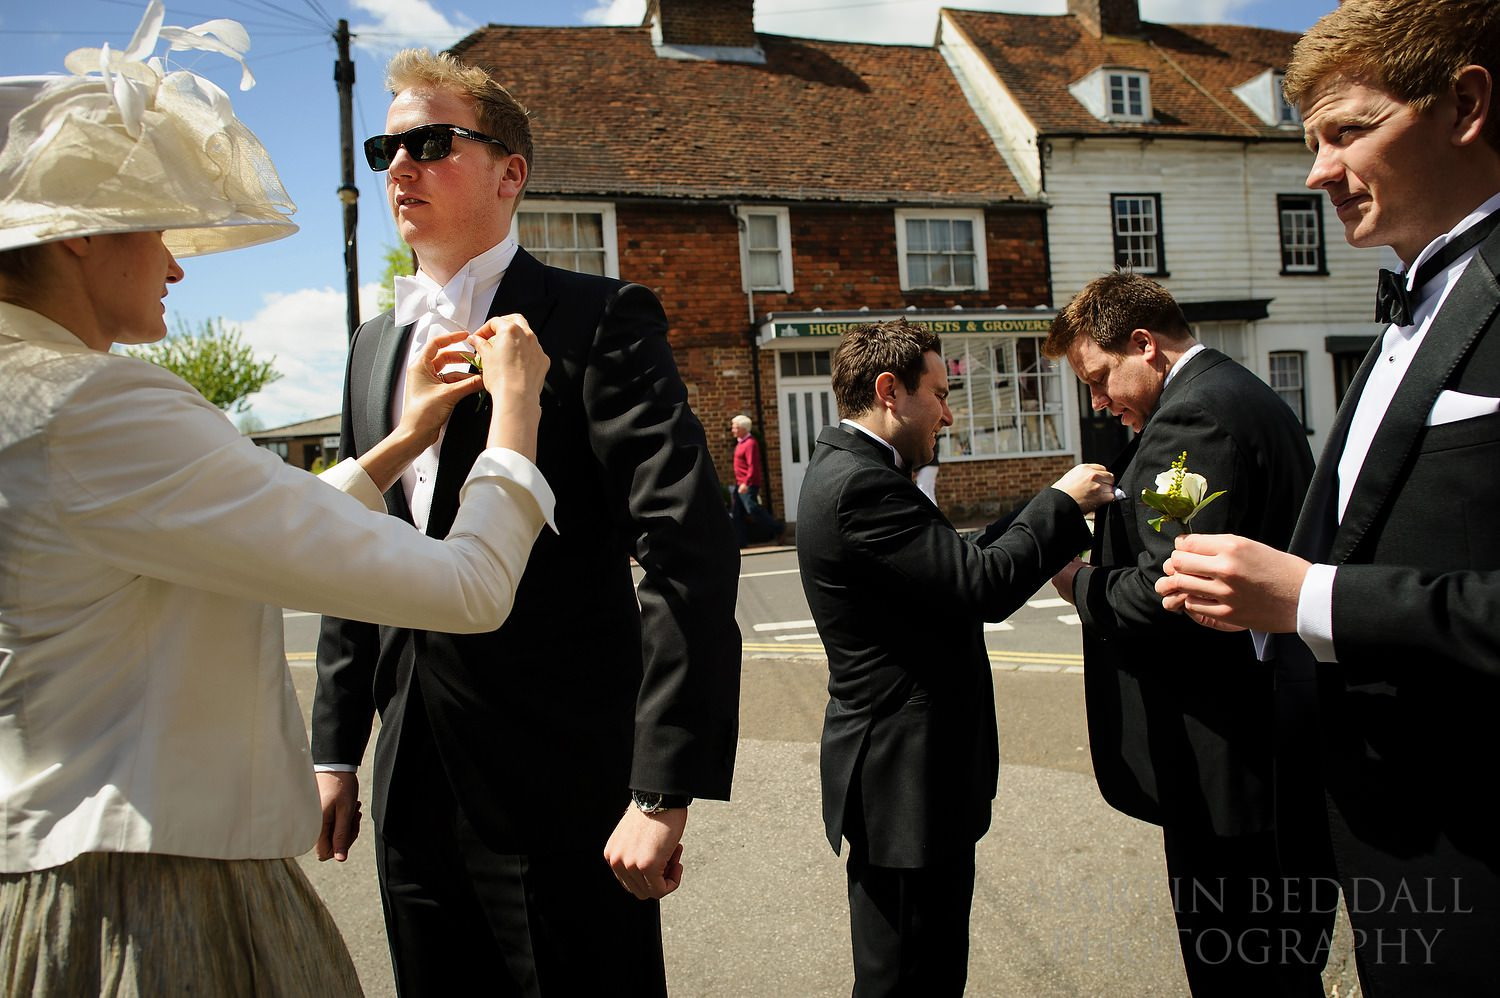 Buttonholes on in the village of Rotherfield